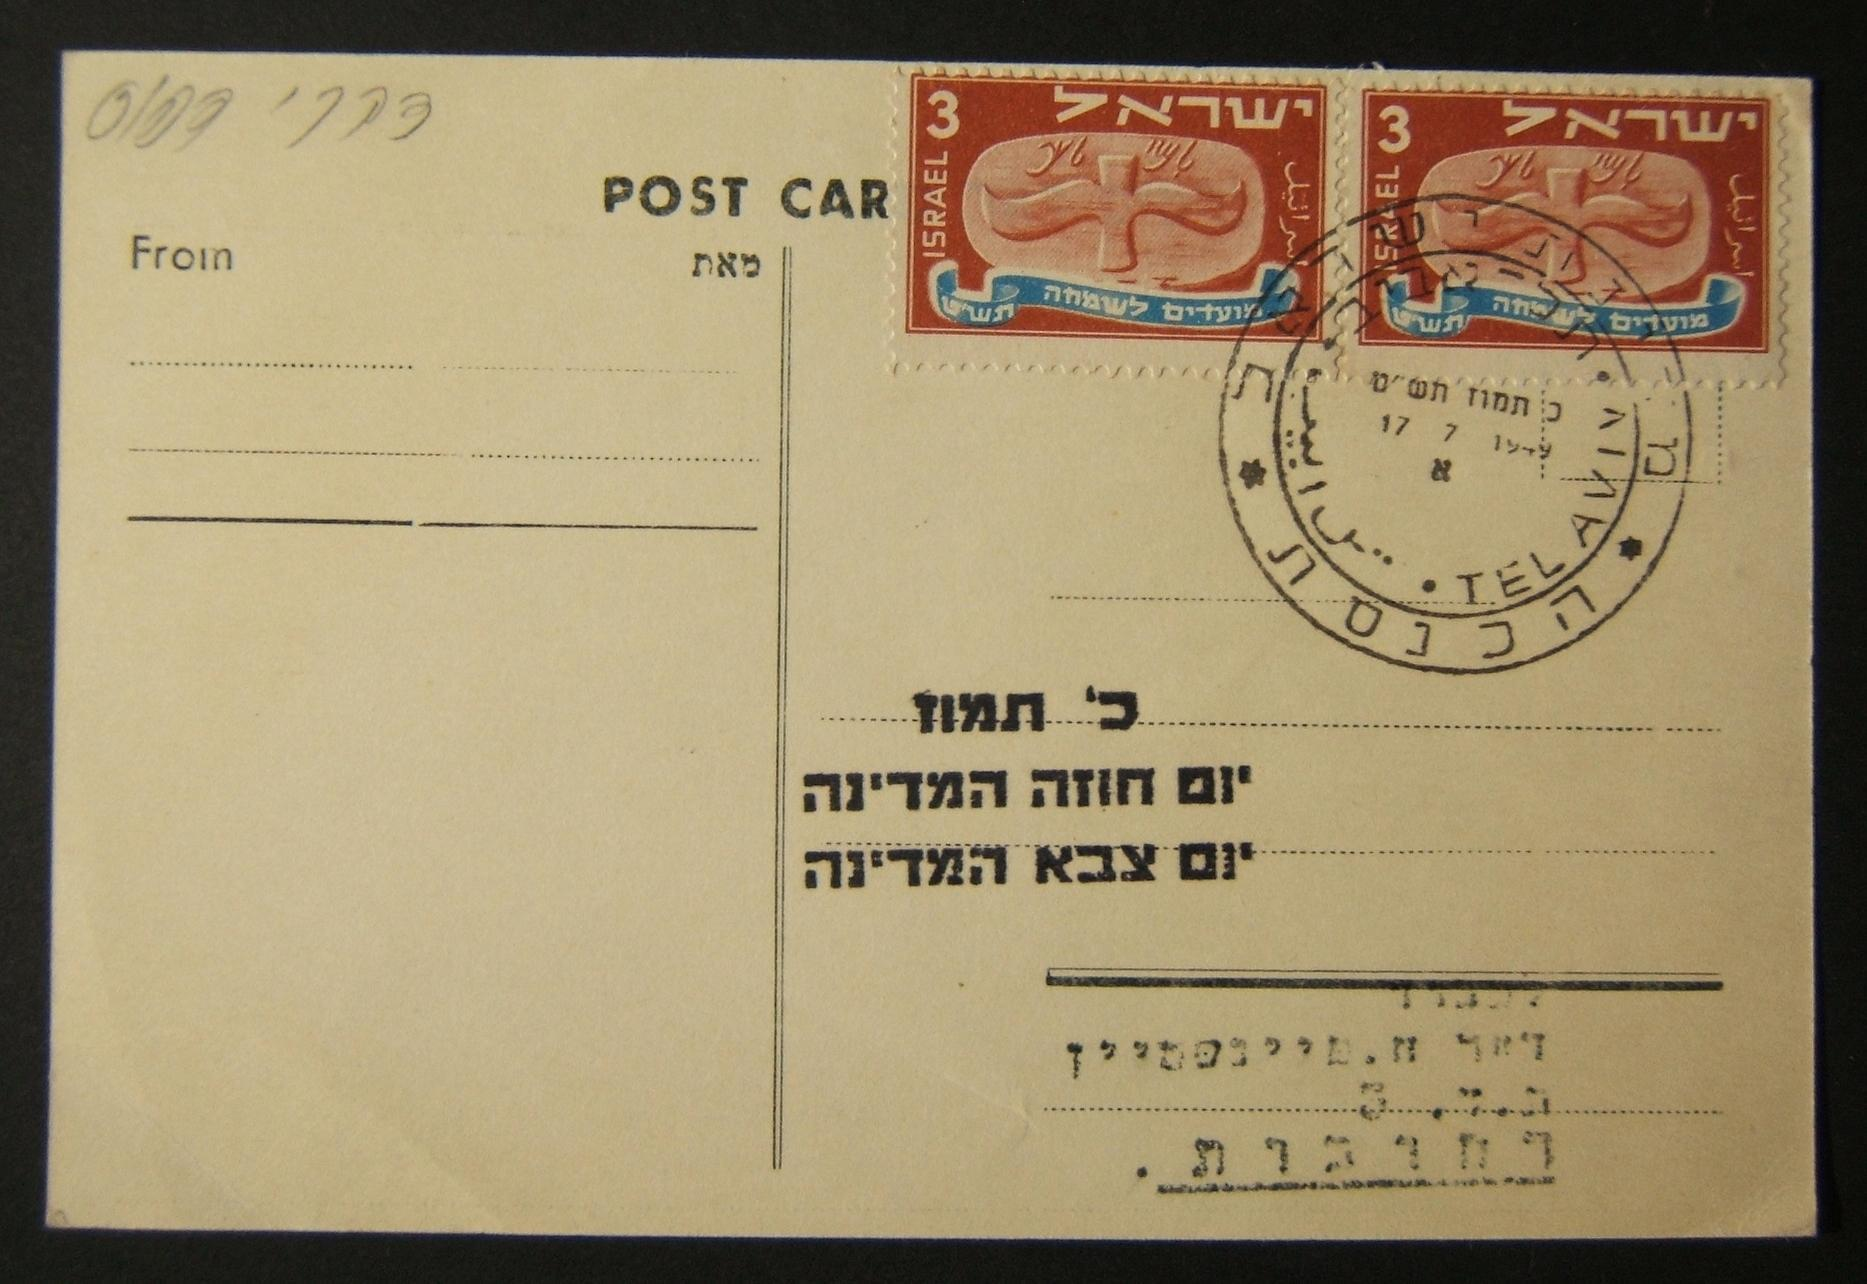 1949 domestic 2nd rate period PM pc: 17-7-1949 pm pc ex TLV to RECHOVOT franked 6pr at the DO-2 period rate (with 1pr overcharged) using 2x 3m 1948 New Years Ba3 tied by special 'A